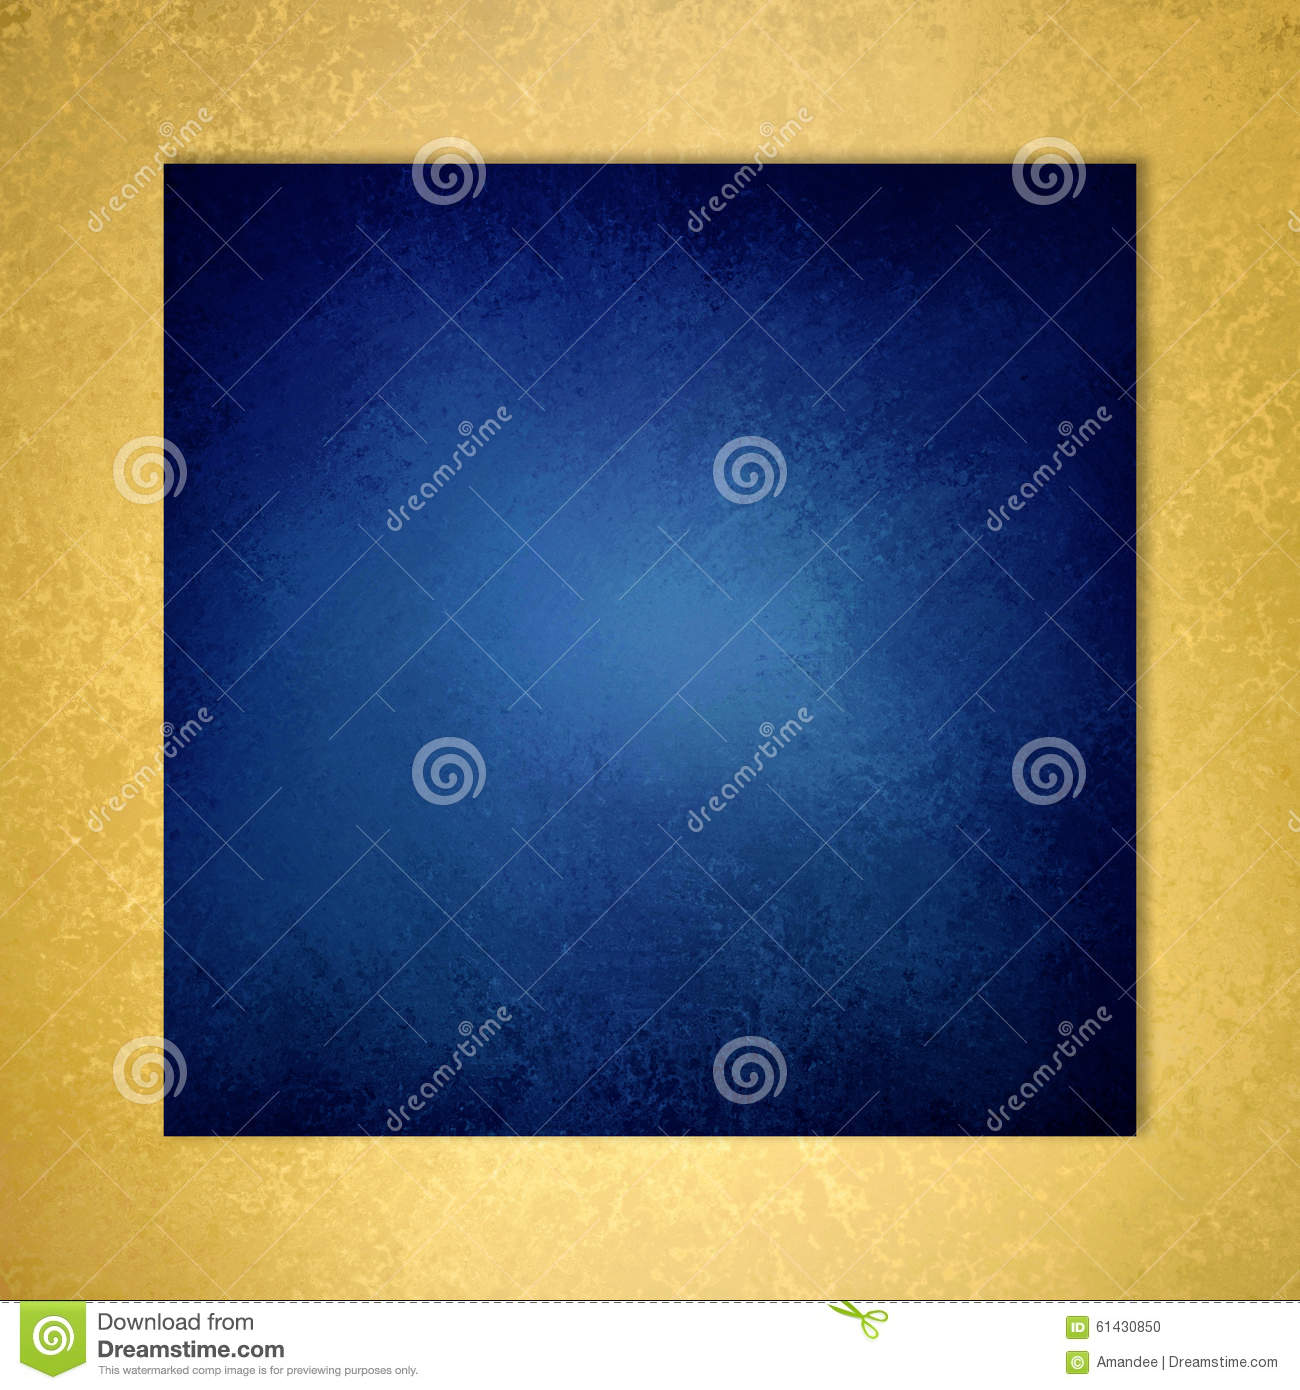 Dark Blue Square Background With Gold Textured Border